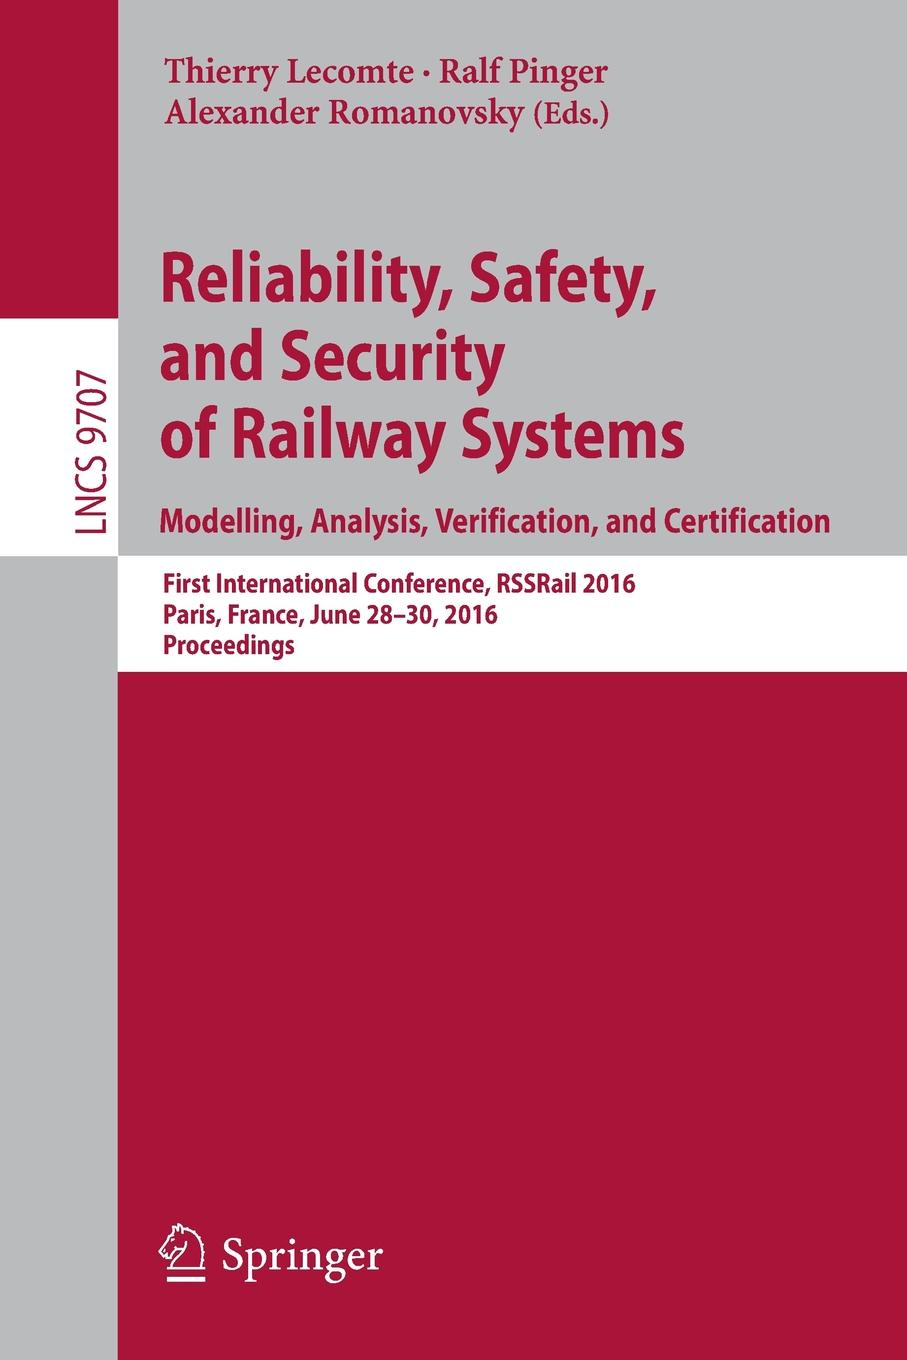 Reliability, Safety, and Security of Railway Systems. Modelling, Analysis, Verification, and Certification. First International Conference, RSSRail 2016, Paris, France, June 28-30, 2016, Proceedings